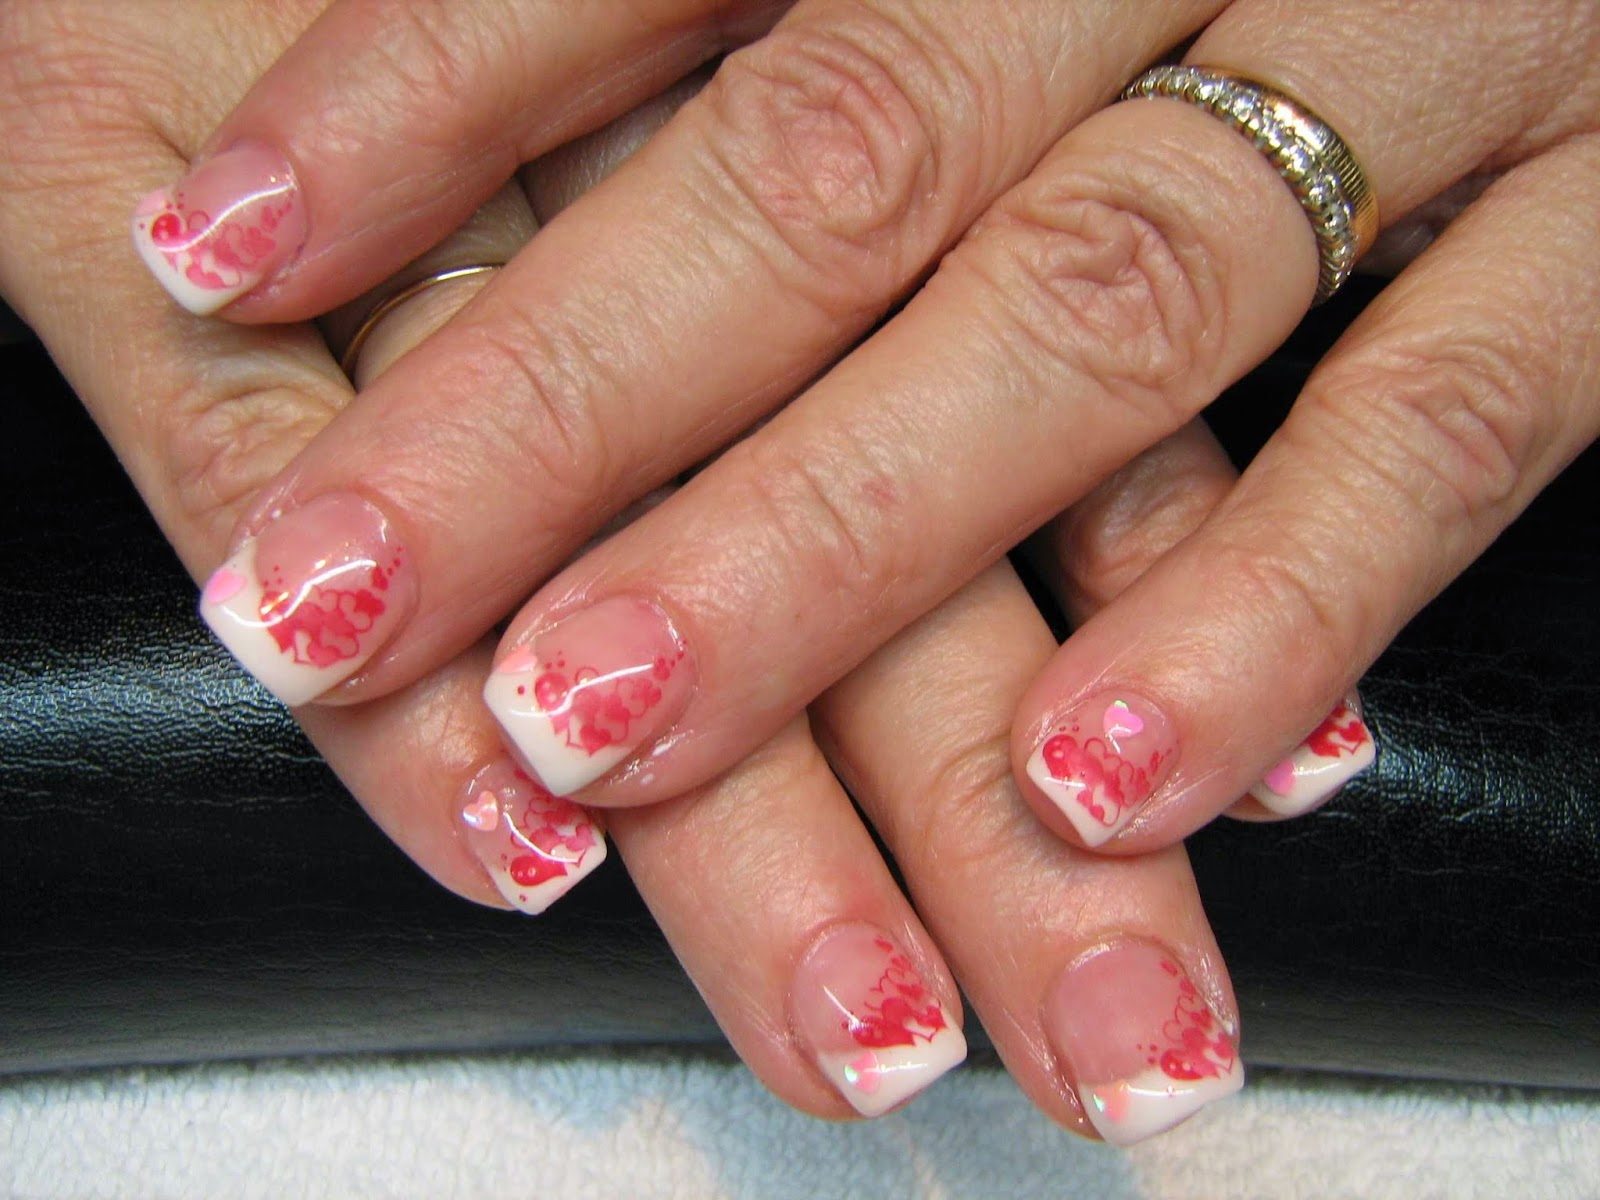 Nail Design Ideas Valentines Day Gallery Nail Art Designs Nail Design Ideas  Valentines Day Image Collections Nail Art Designs Nail Design Ideas  Valentines ...